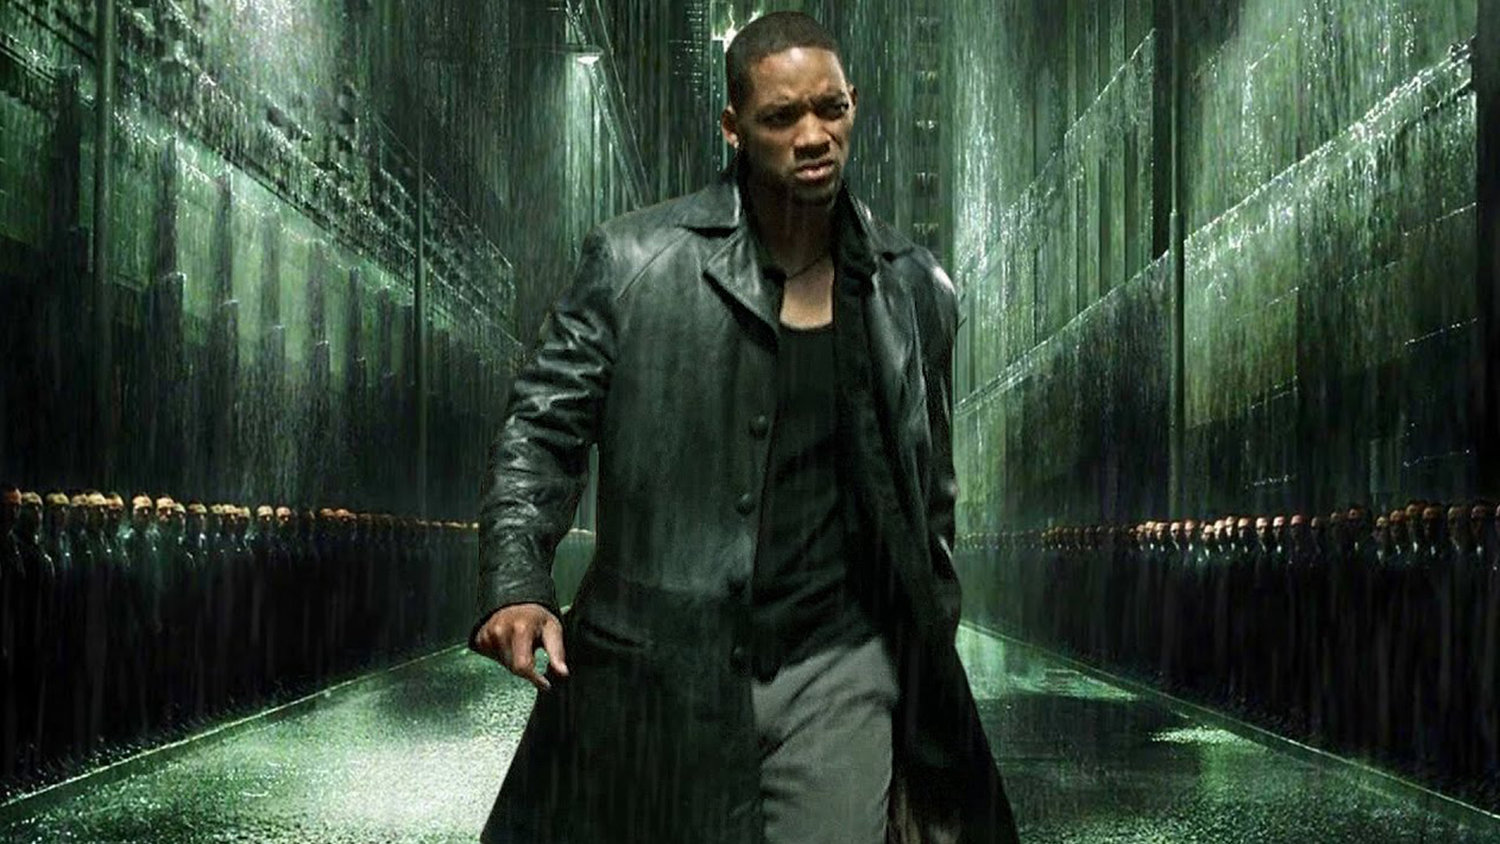 Here's What THE MATRIX Would Have Looked Like If Will Smith Played Neo